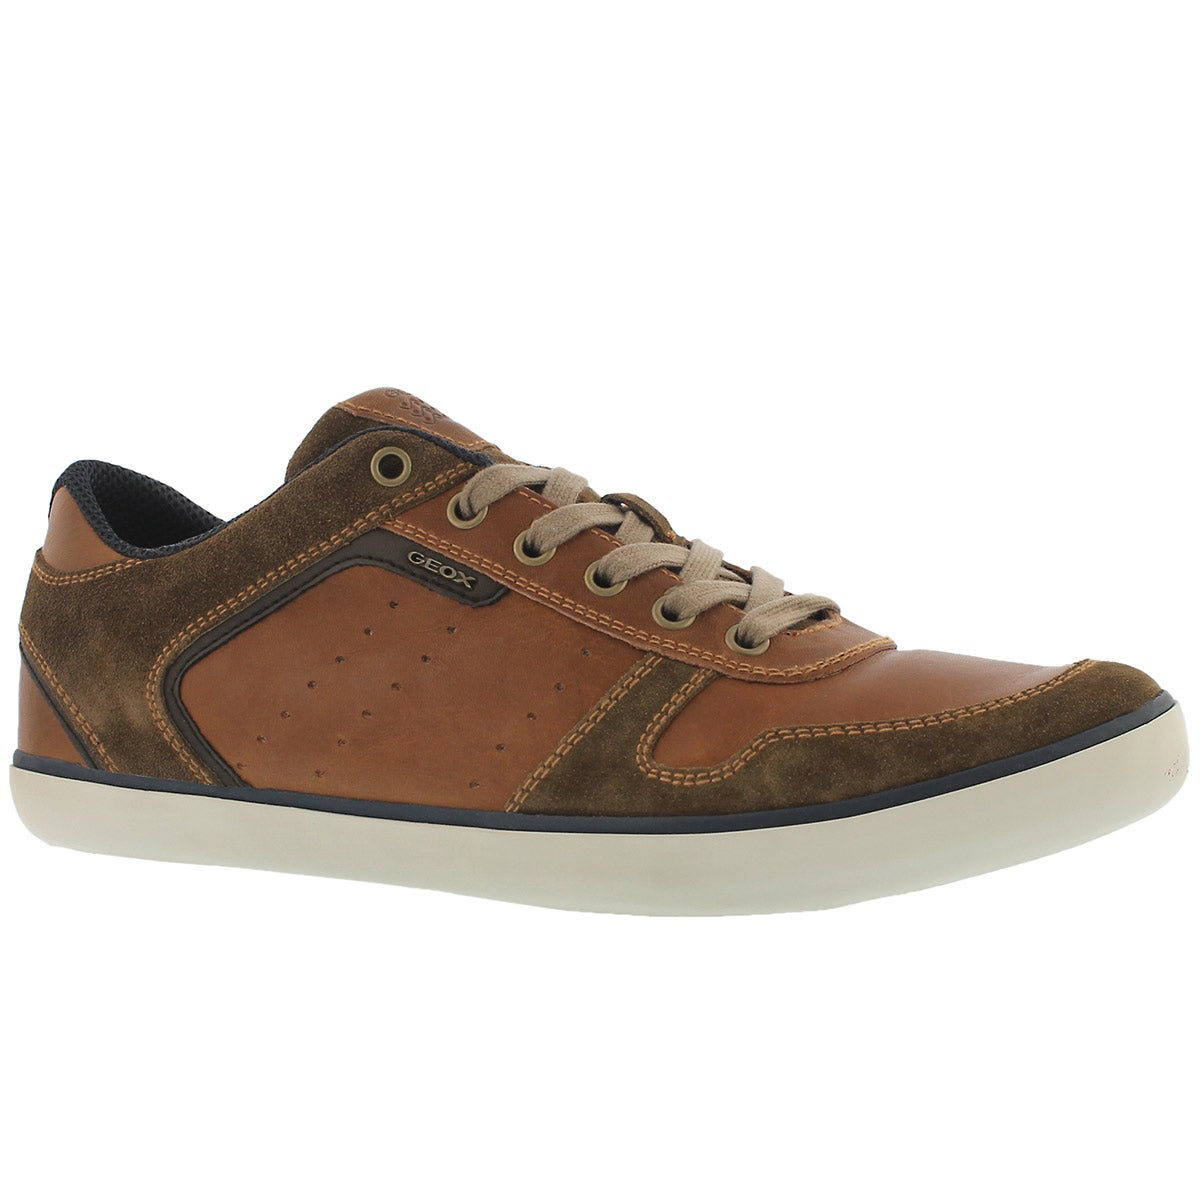 Men's BOX brown lace up fashion sneakers